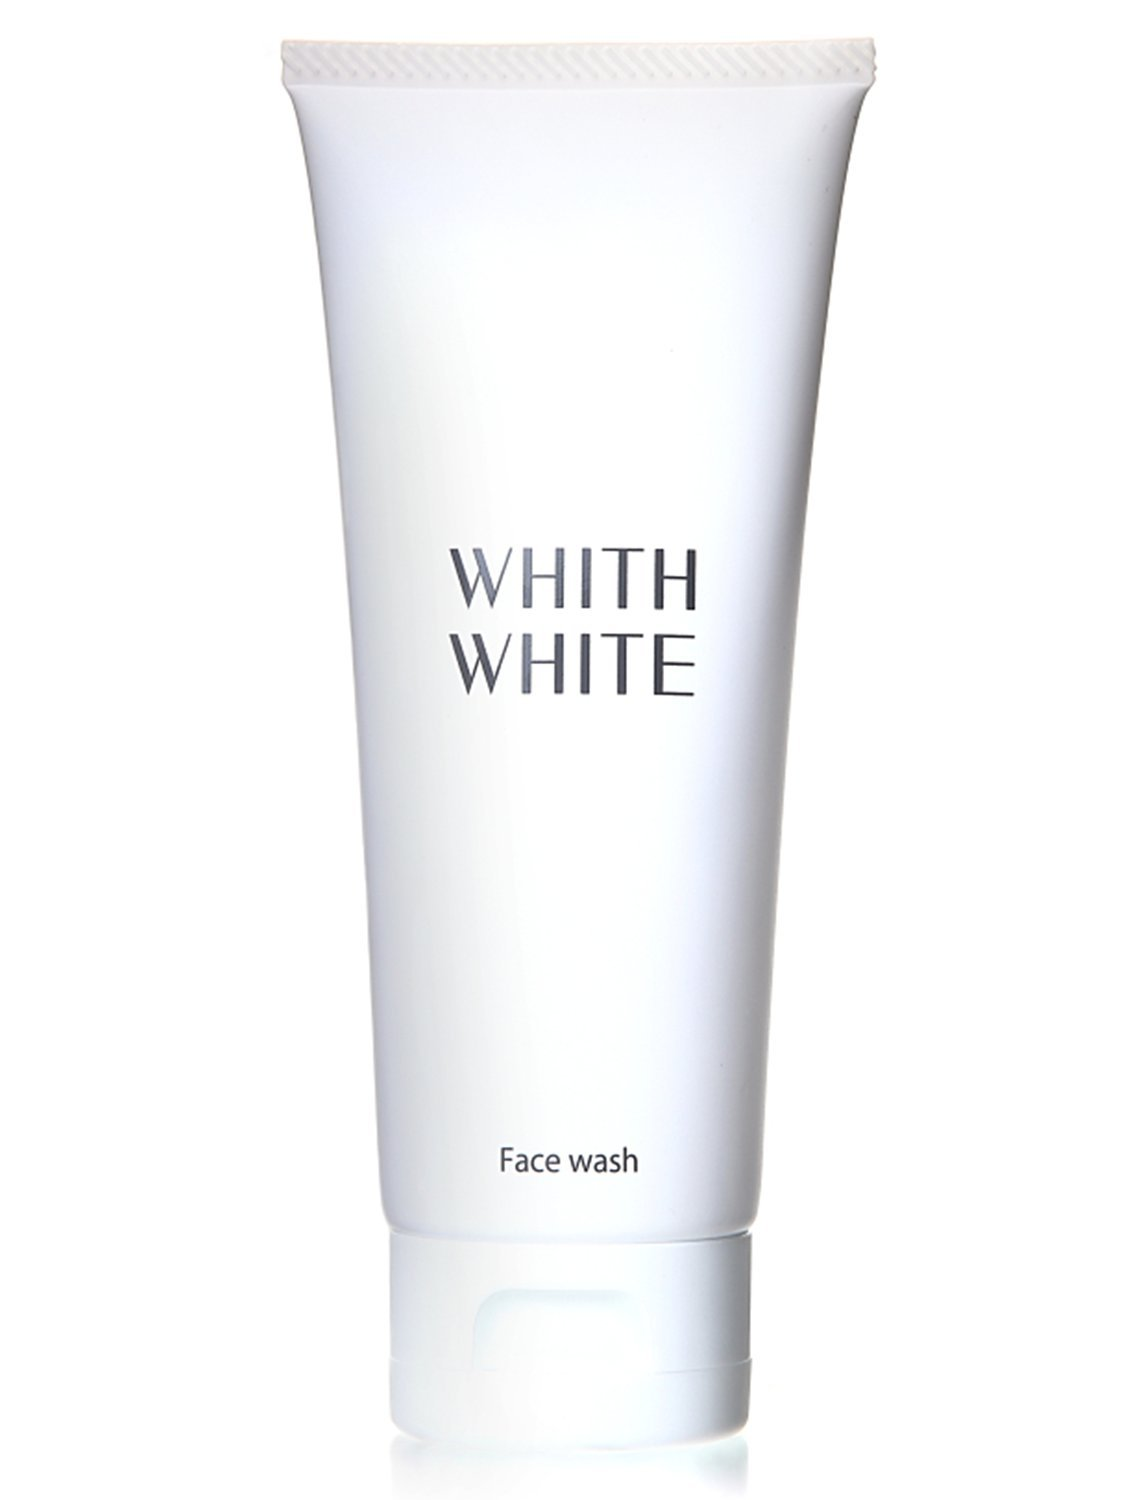 WHITH WHITE Whitening Foam Face Wash Cleanser, Made in Japan 日本, Cleans blackheads Pore Cloggings darkness, Reduces Spots blotchiness darkness, 3.5oz(100g) by WHITH WHITE